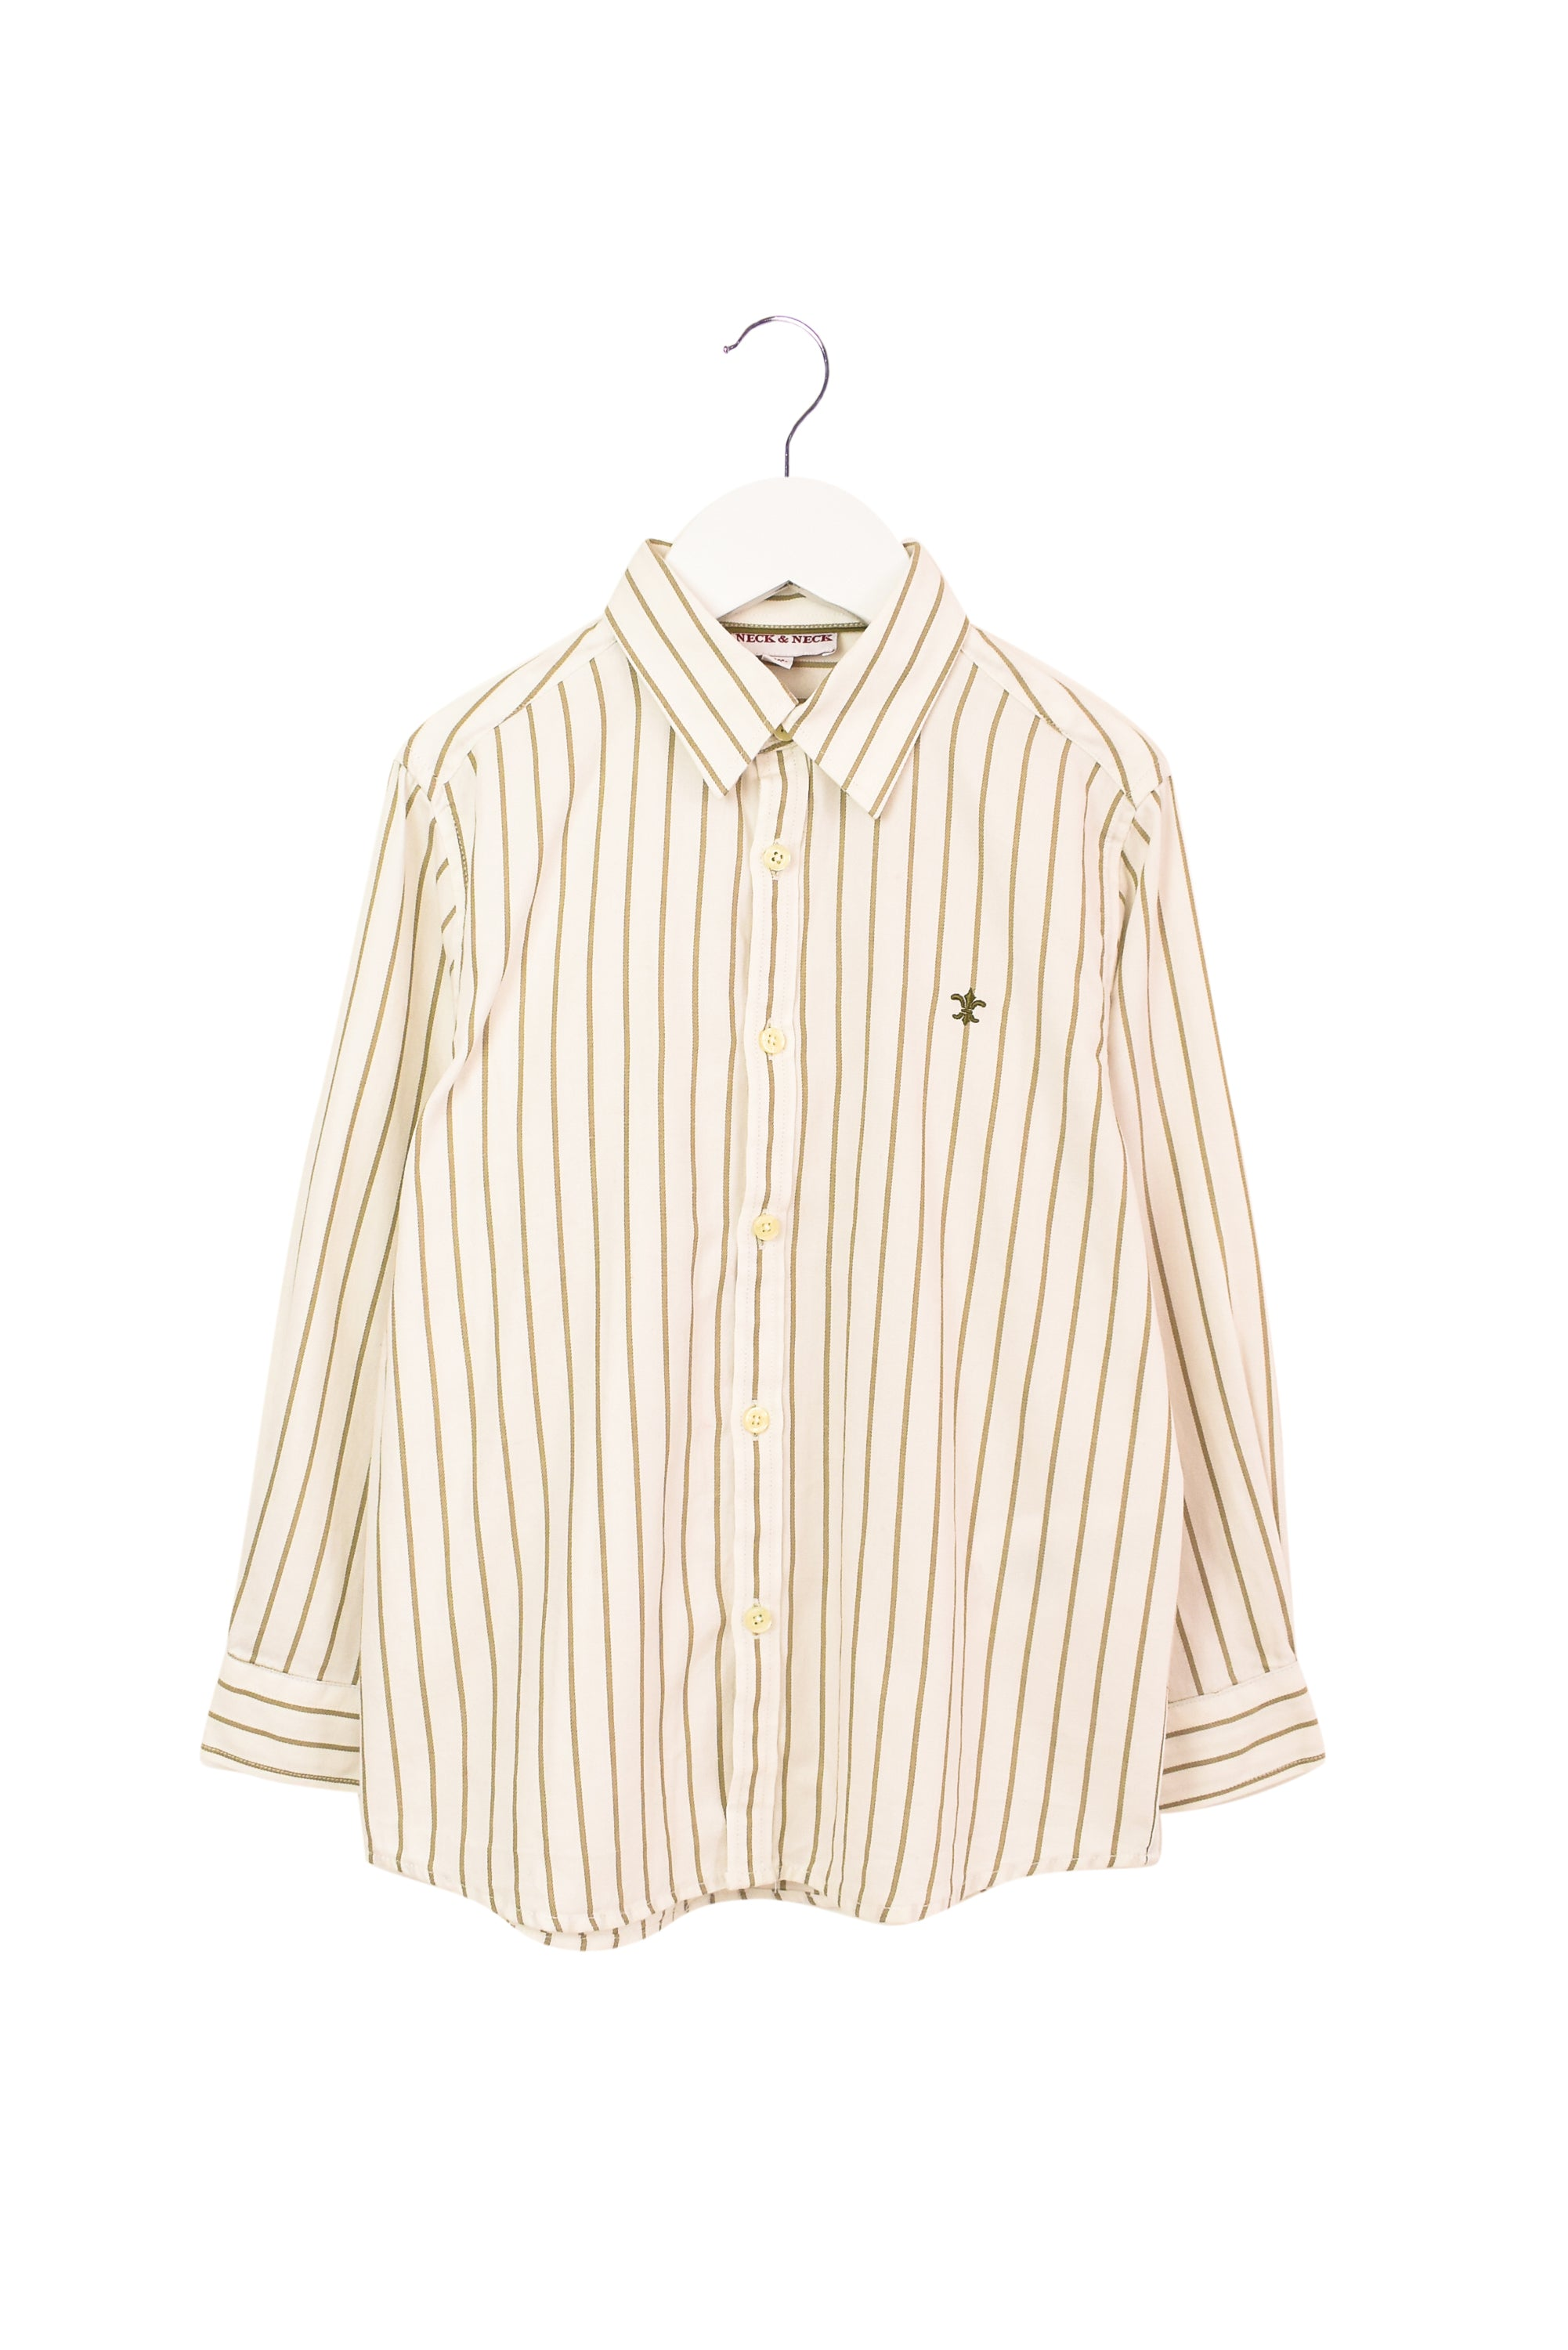 10008199 Neck & Neck Kids~ Shirt 6T at Retykle